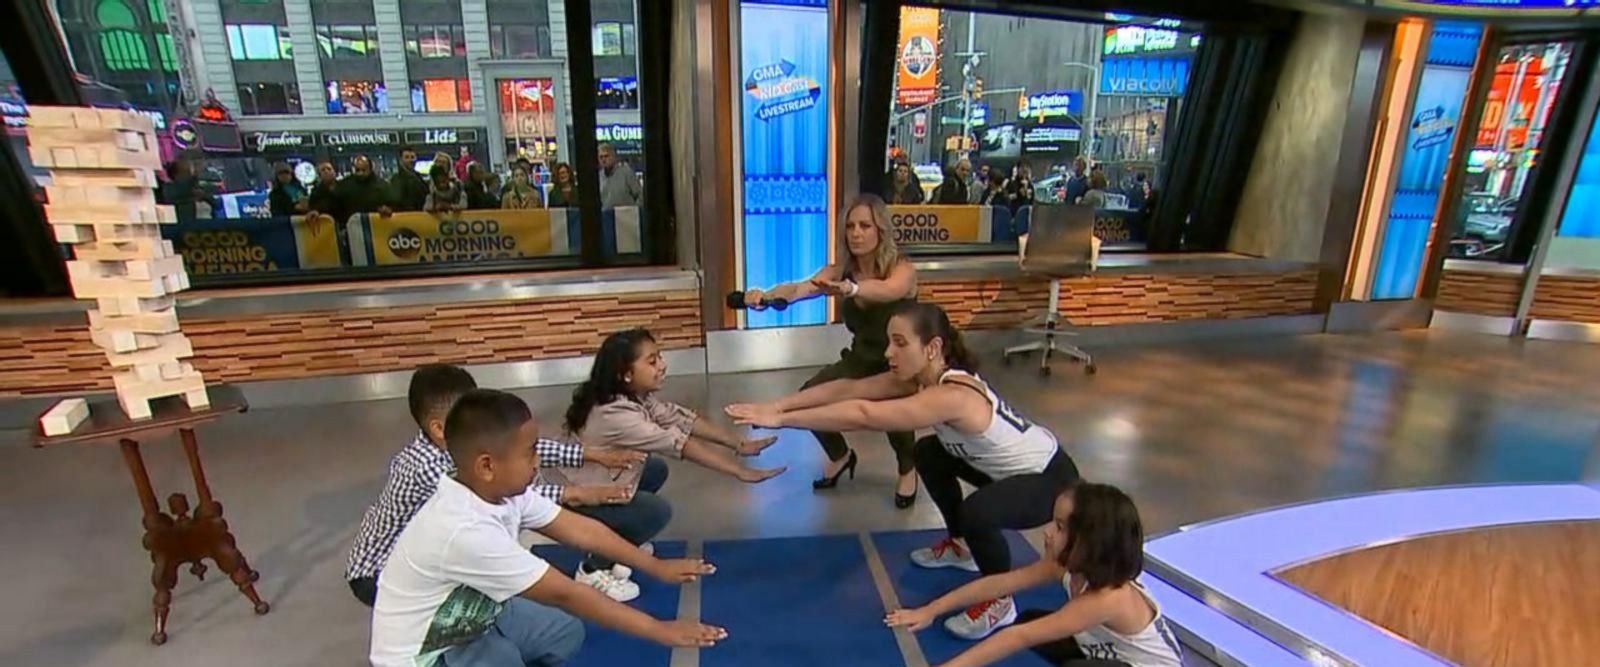 VIDEO: Kids burn off calories with CrossFit exercise